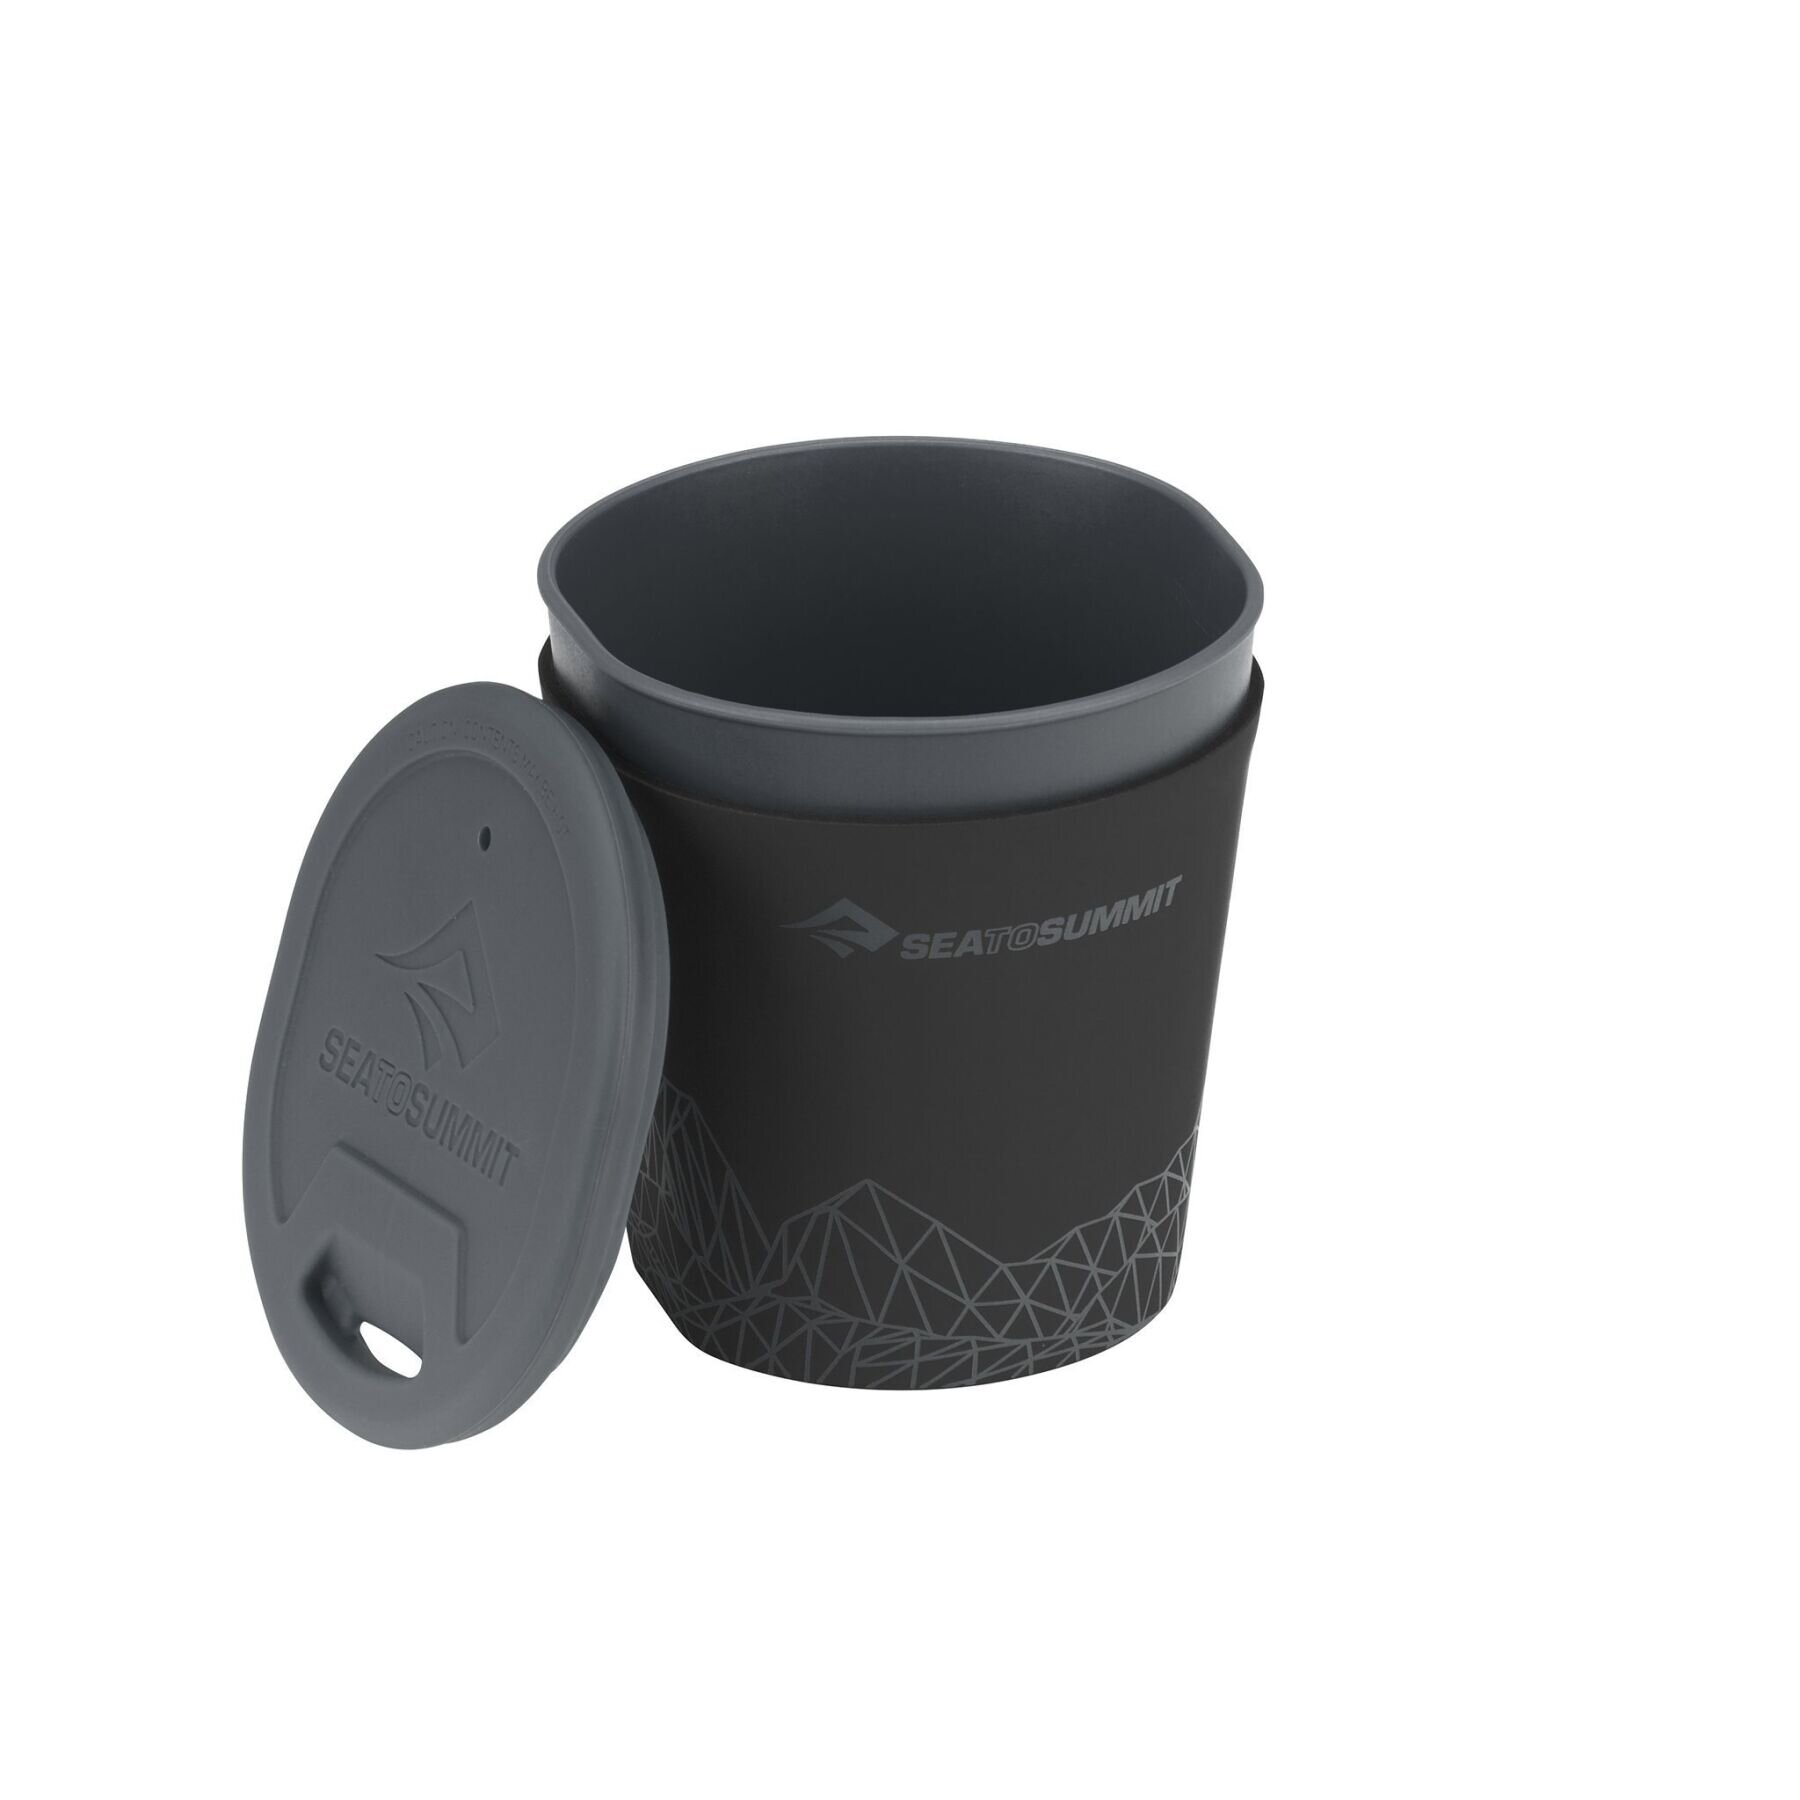 Стакан с крышкой Sea To Summit - DeltaLight Insulmug Grey, 350 мл (STS ADLTINMUGGY)